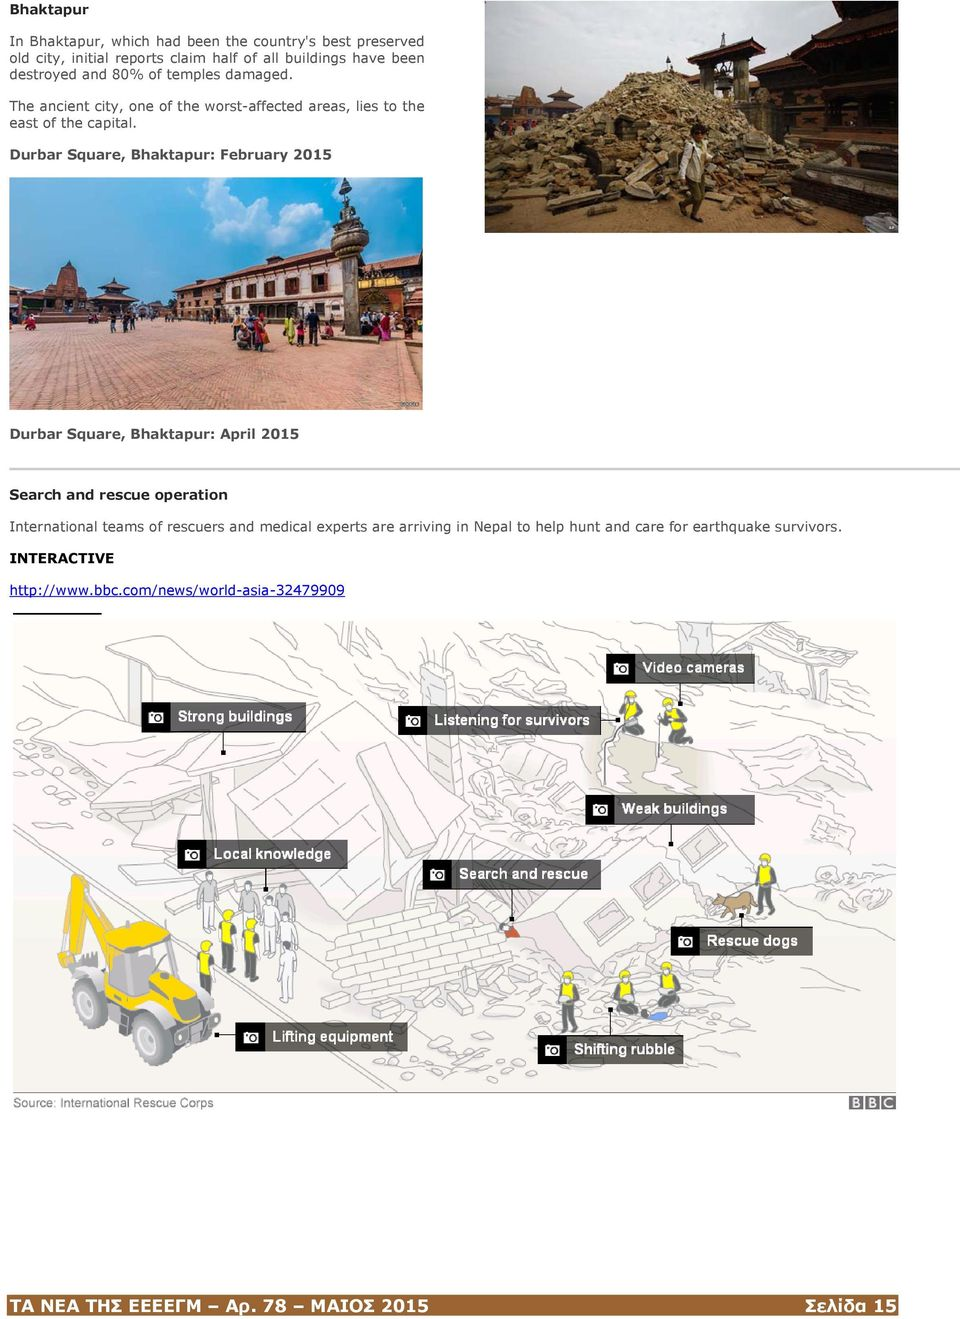 Durbar Square, Bhaktapur: February 2015 Durbar Square, Bhaktapur: April 2015 Search and rescue operation International teams of rescuers and